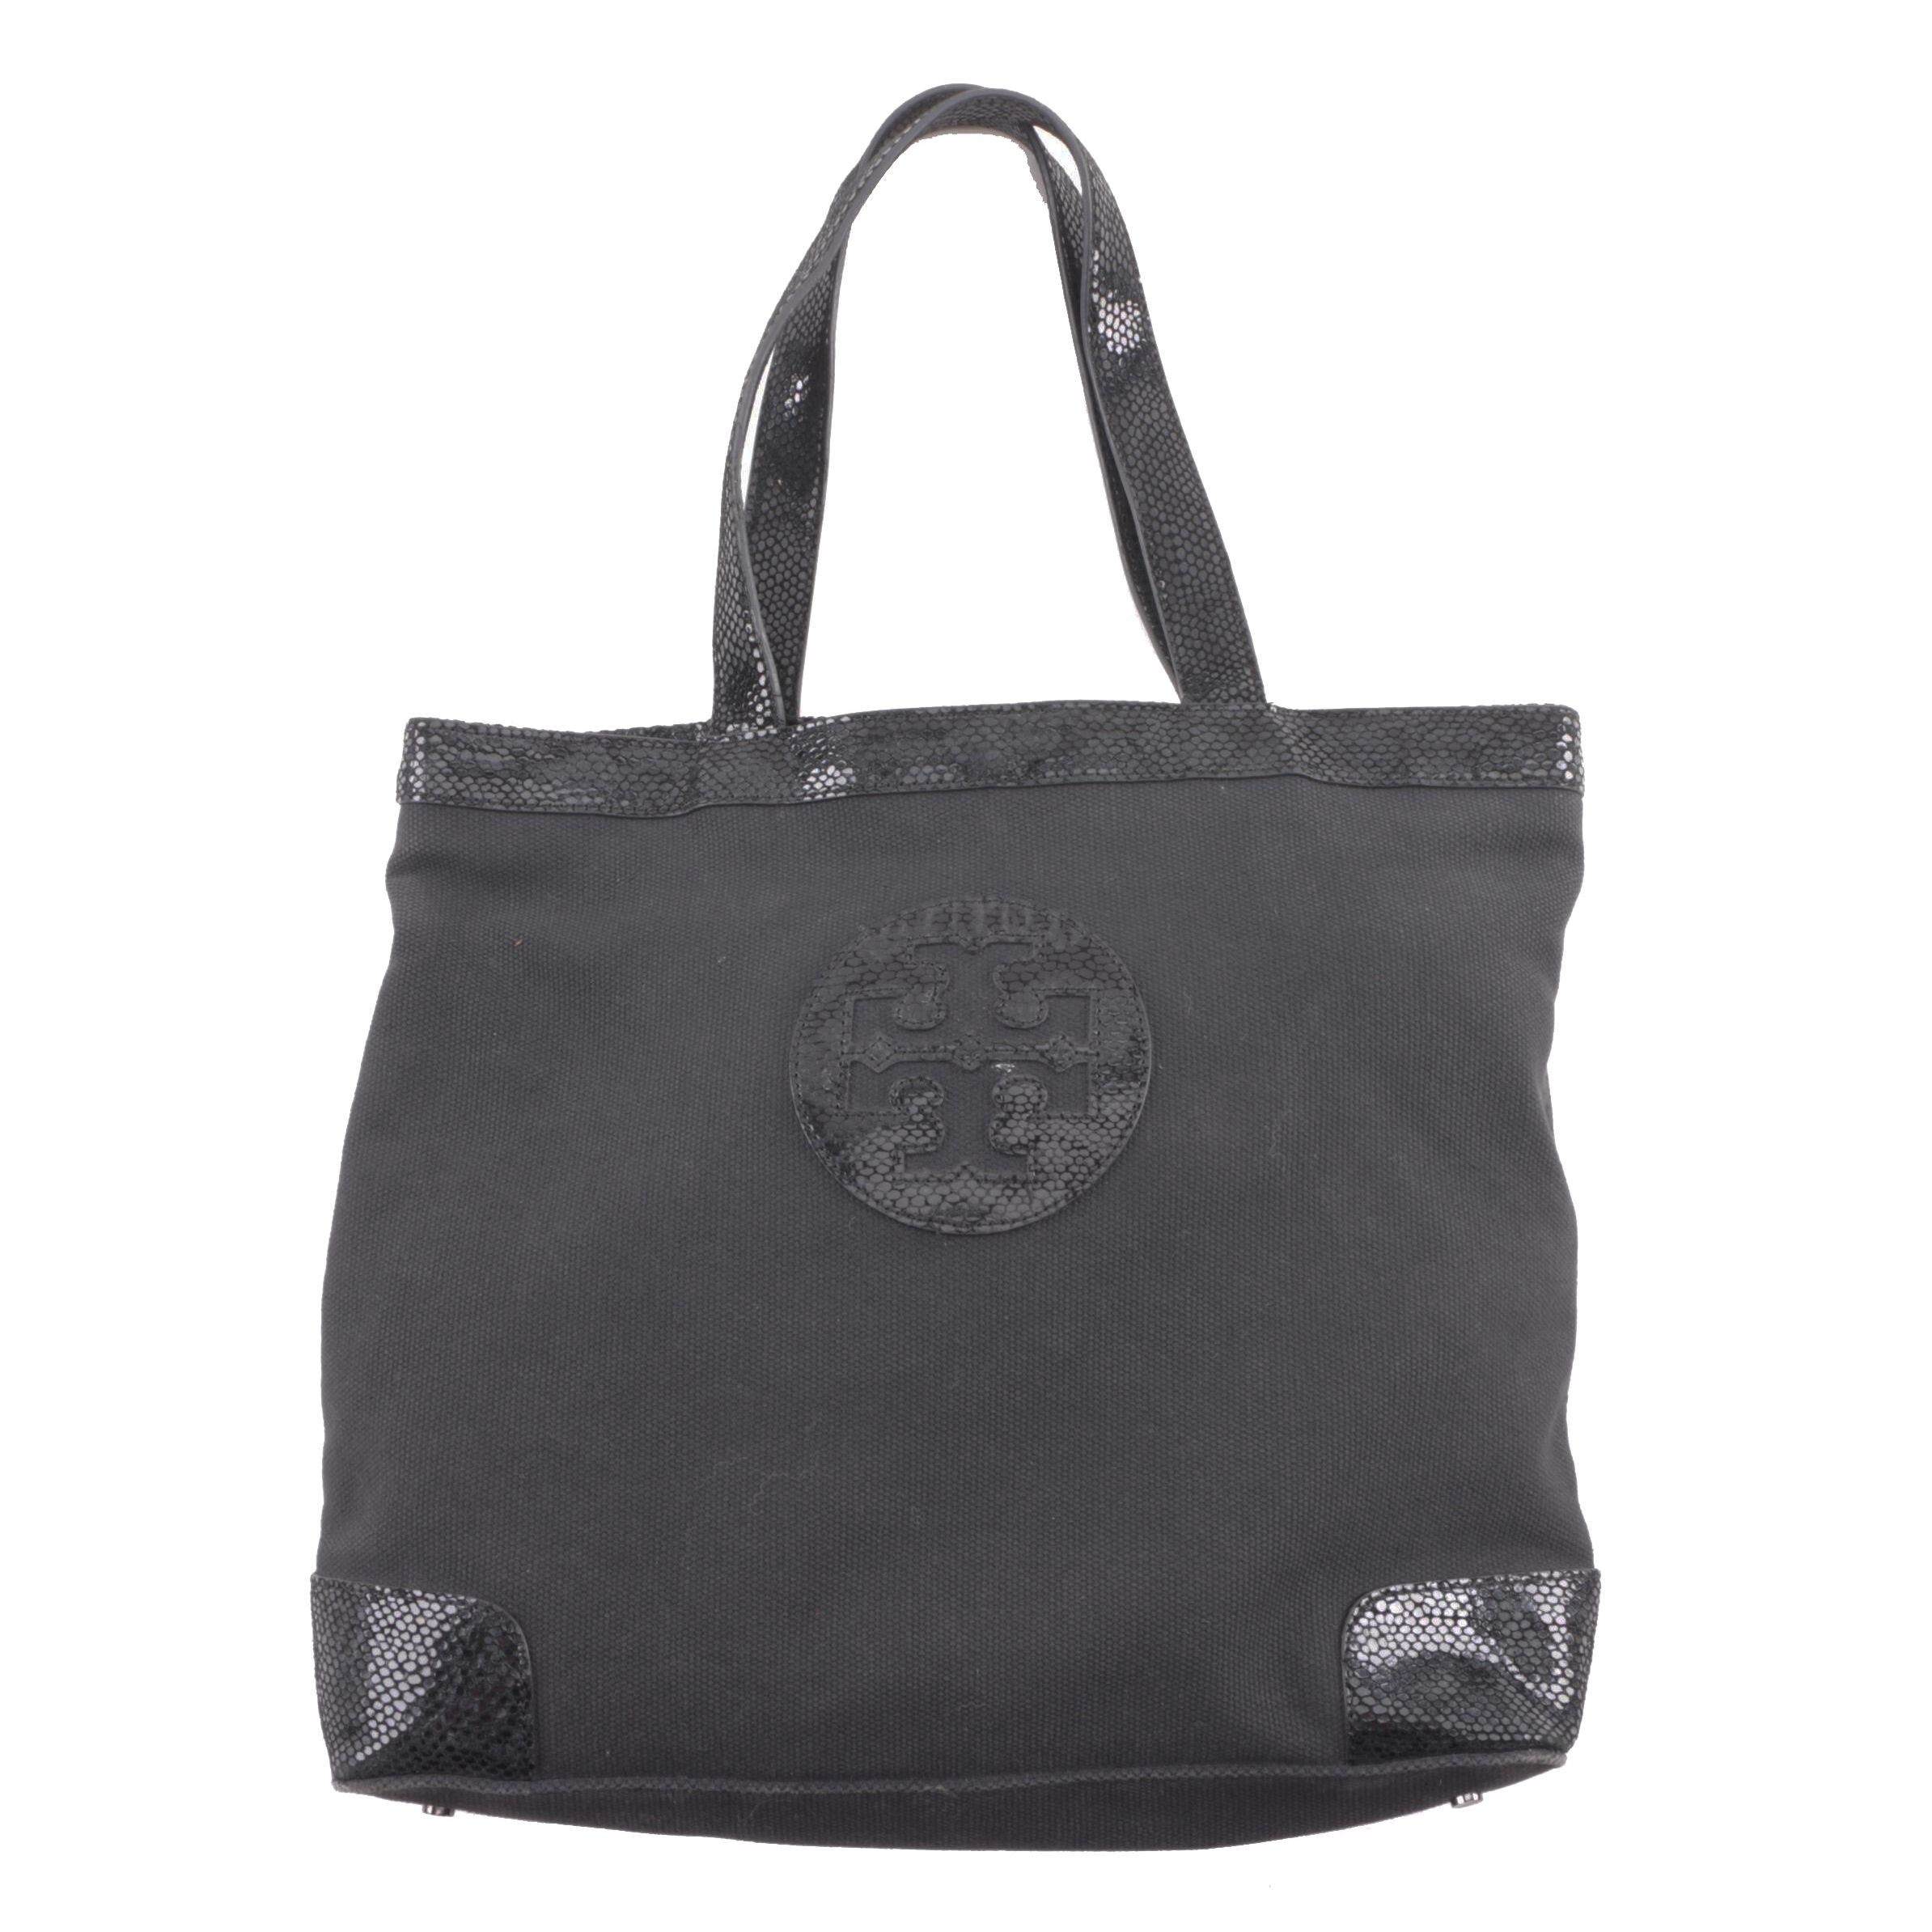 Tory Burch Black Canvas Tote with Reptile Embossed Suede Trim